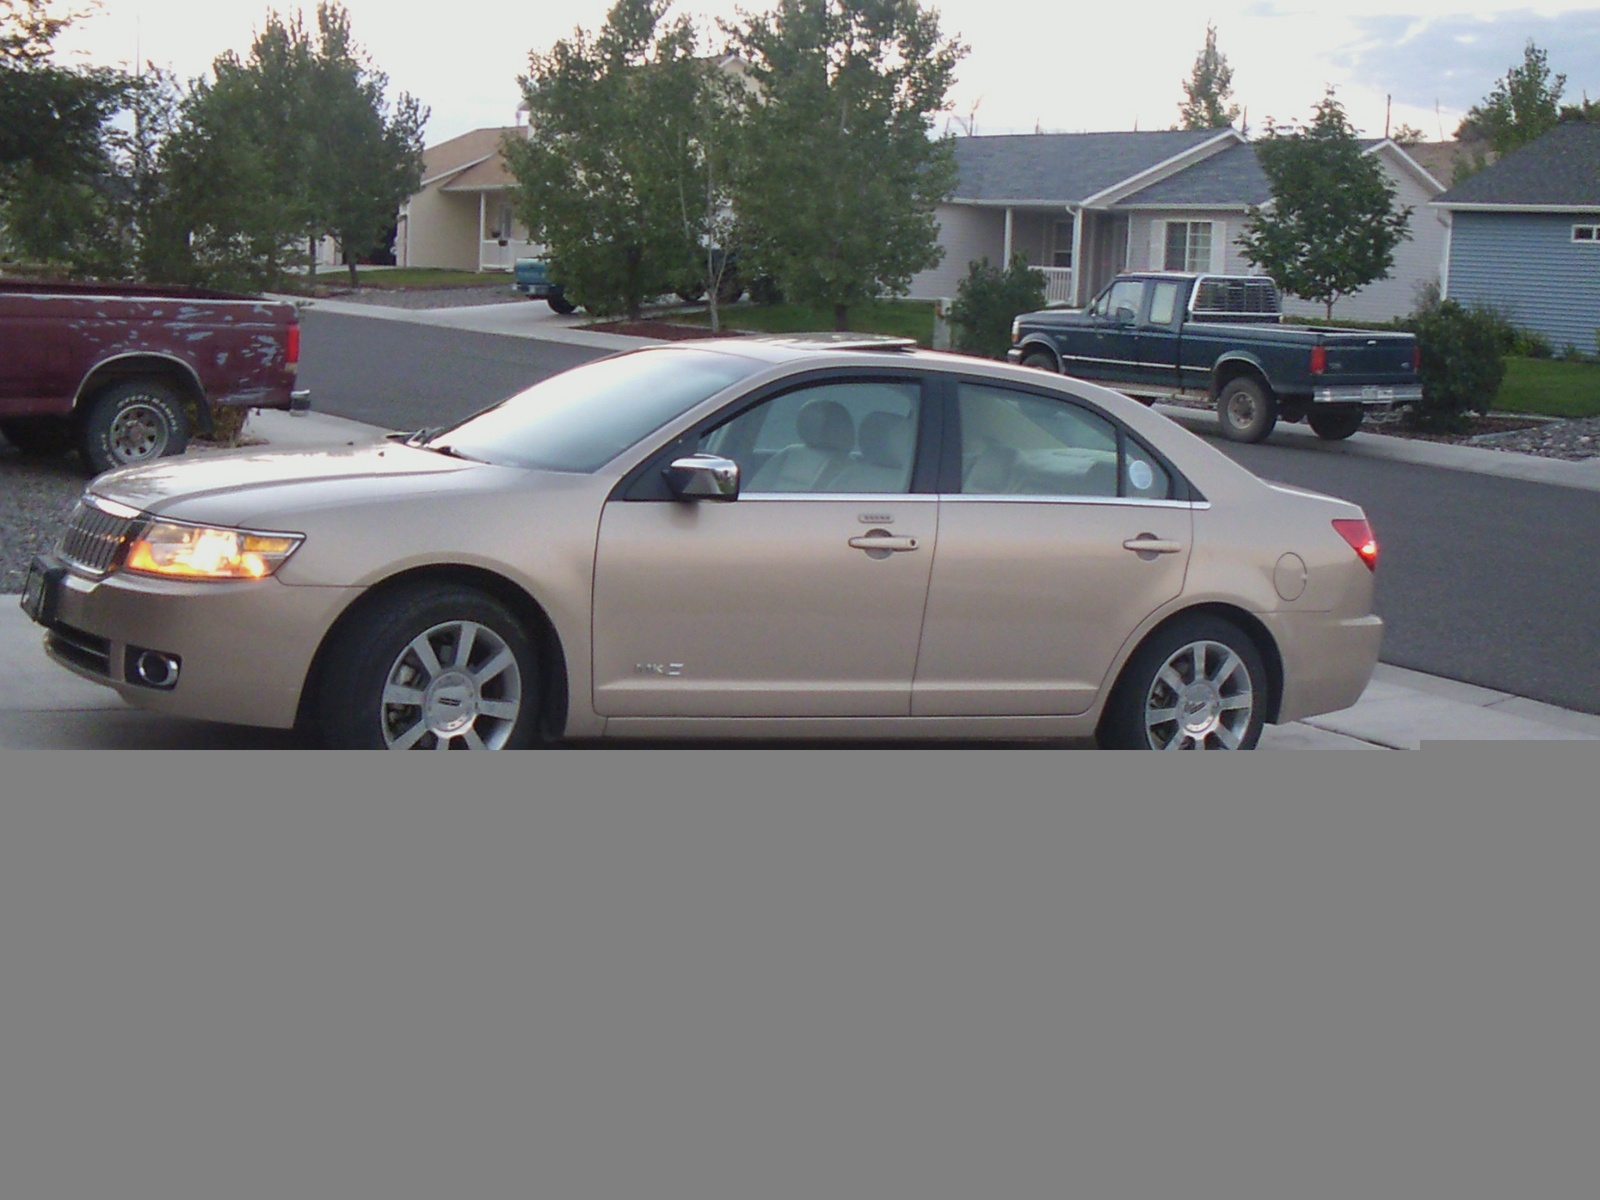 2007 Lincoln MKZ - Pictures - CarGurus